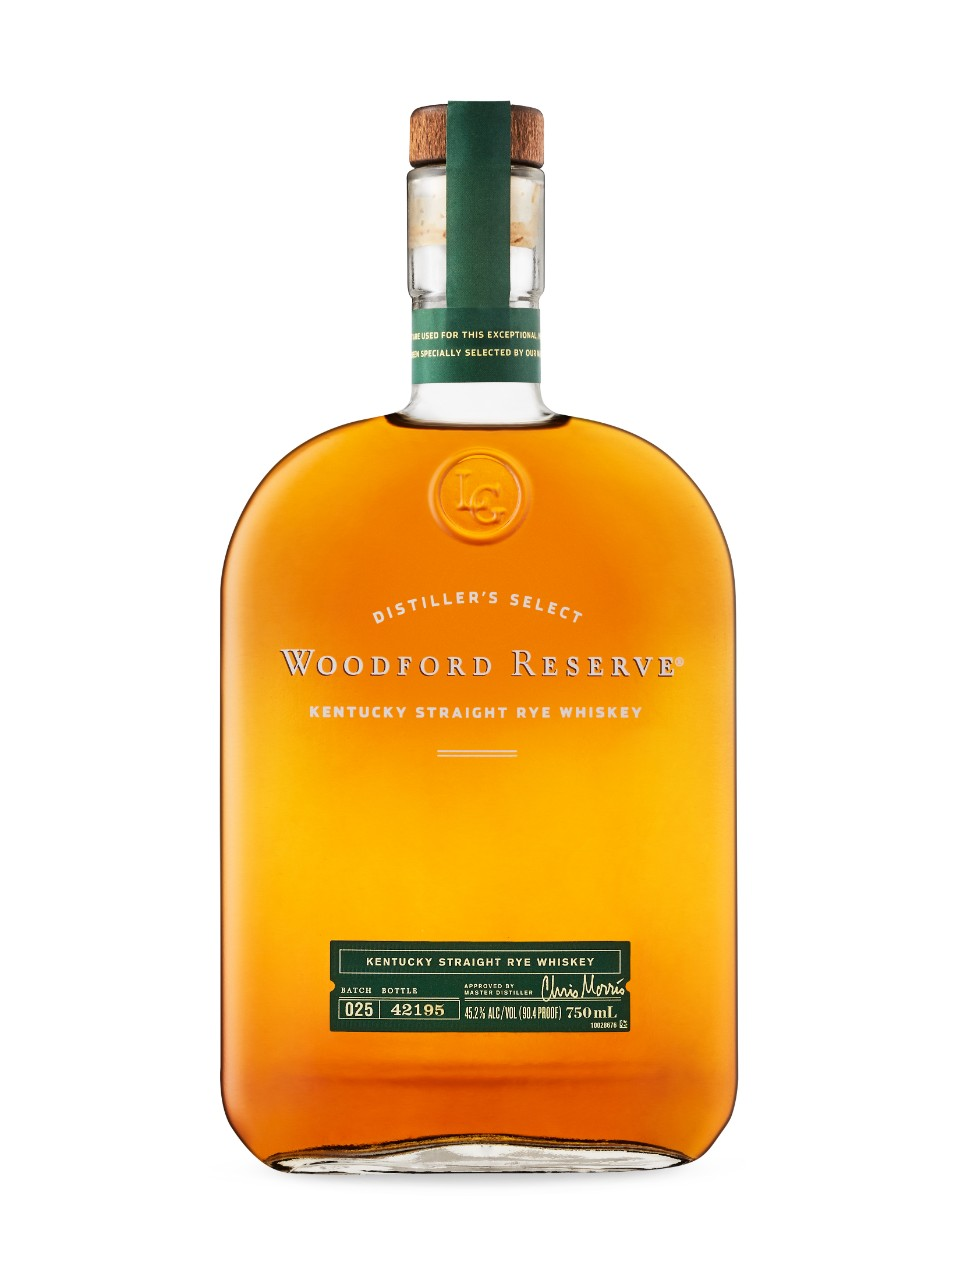 Woodford Reserve Straight Rye Whiskey from LCBO